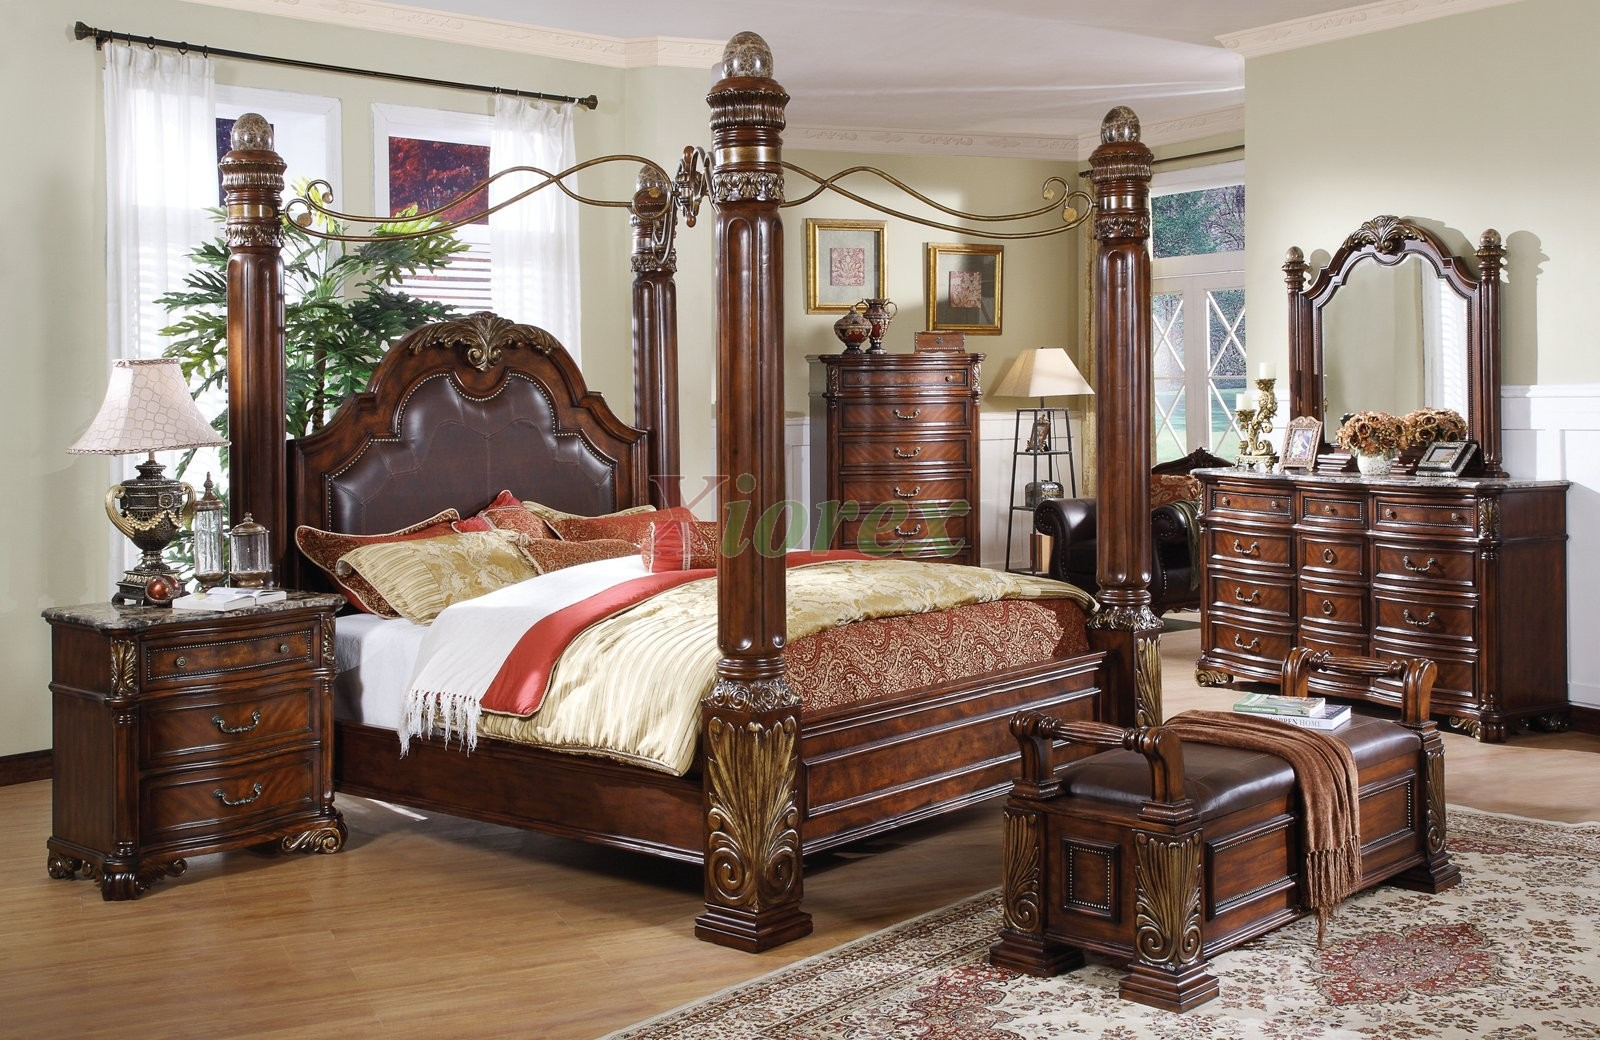 Canopy bed sets bedroom furniture sets w poster canopy for Bed set queen furniture